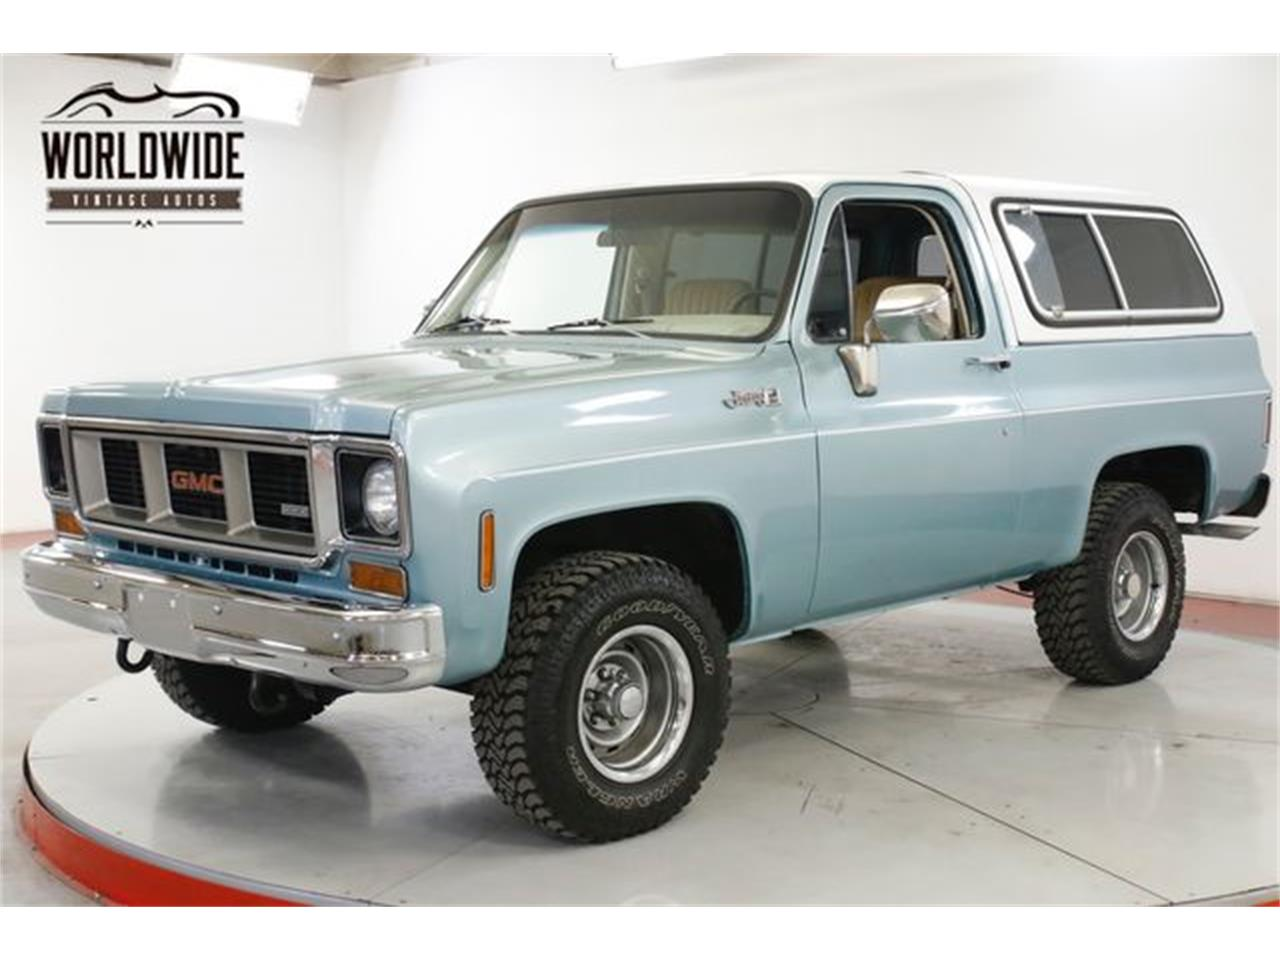 for sale 1978 gmc jimmy in denver , colorado cars - denver, co at geebo